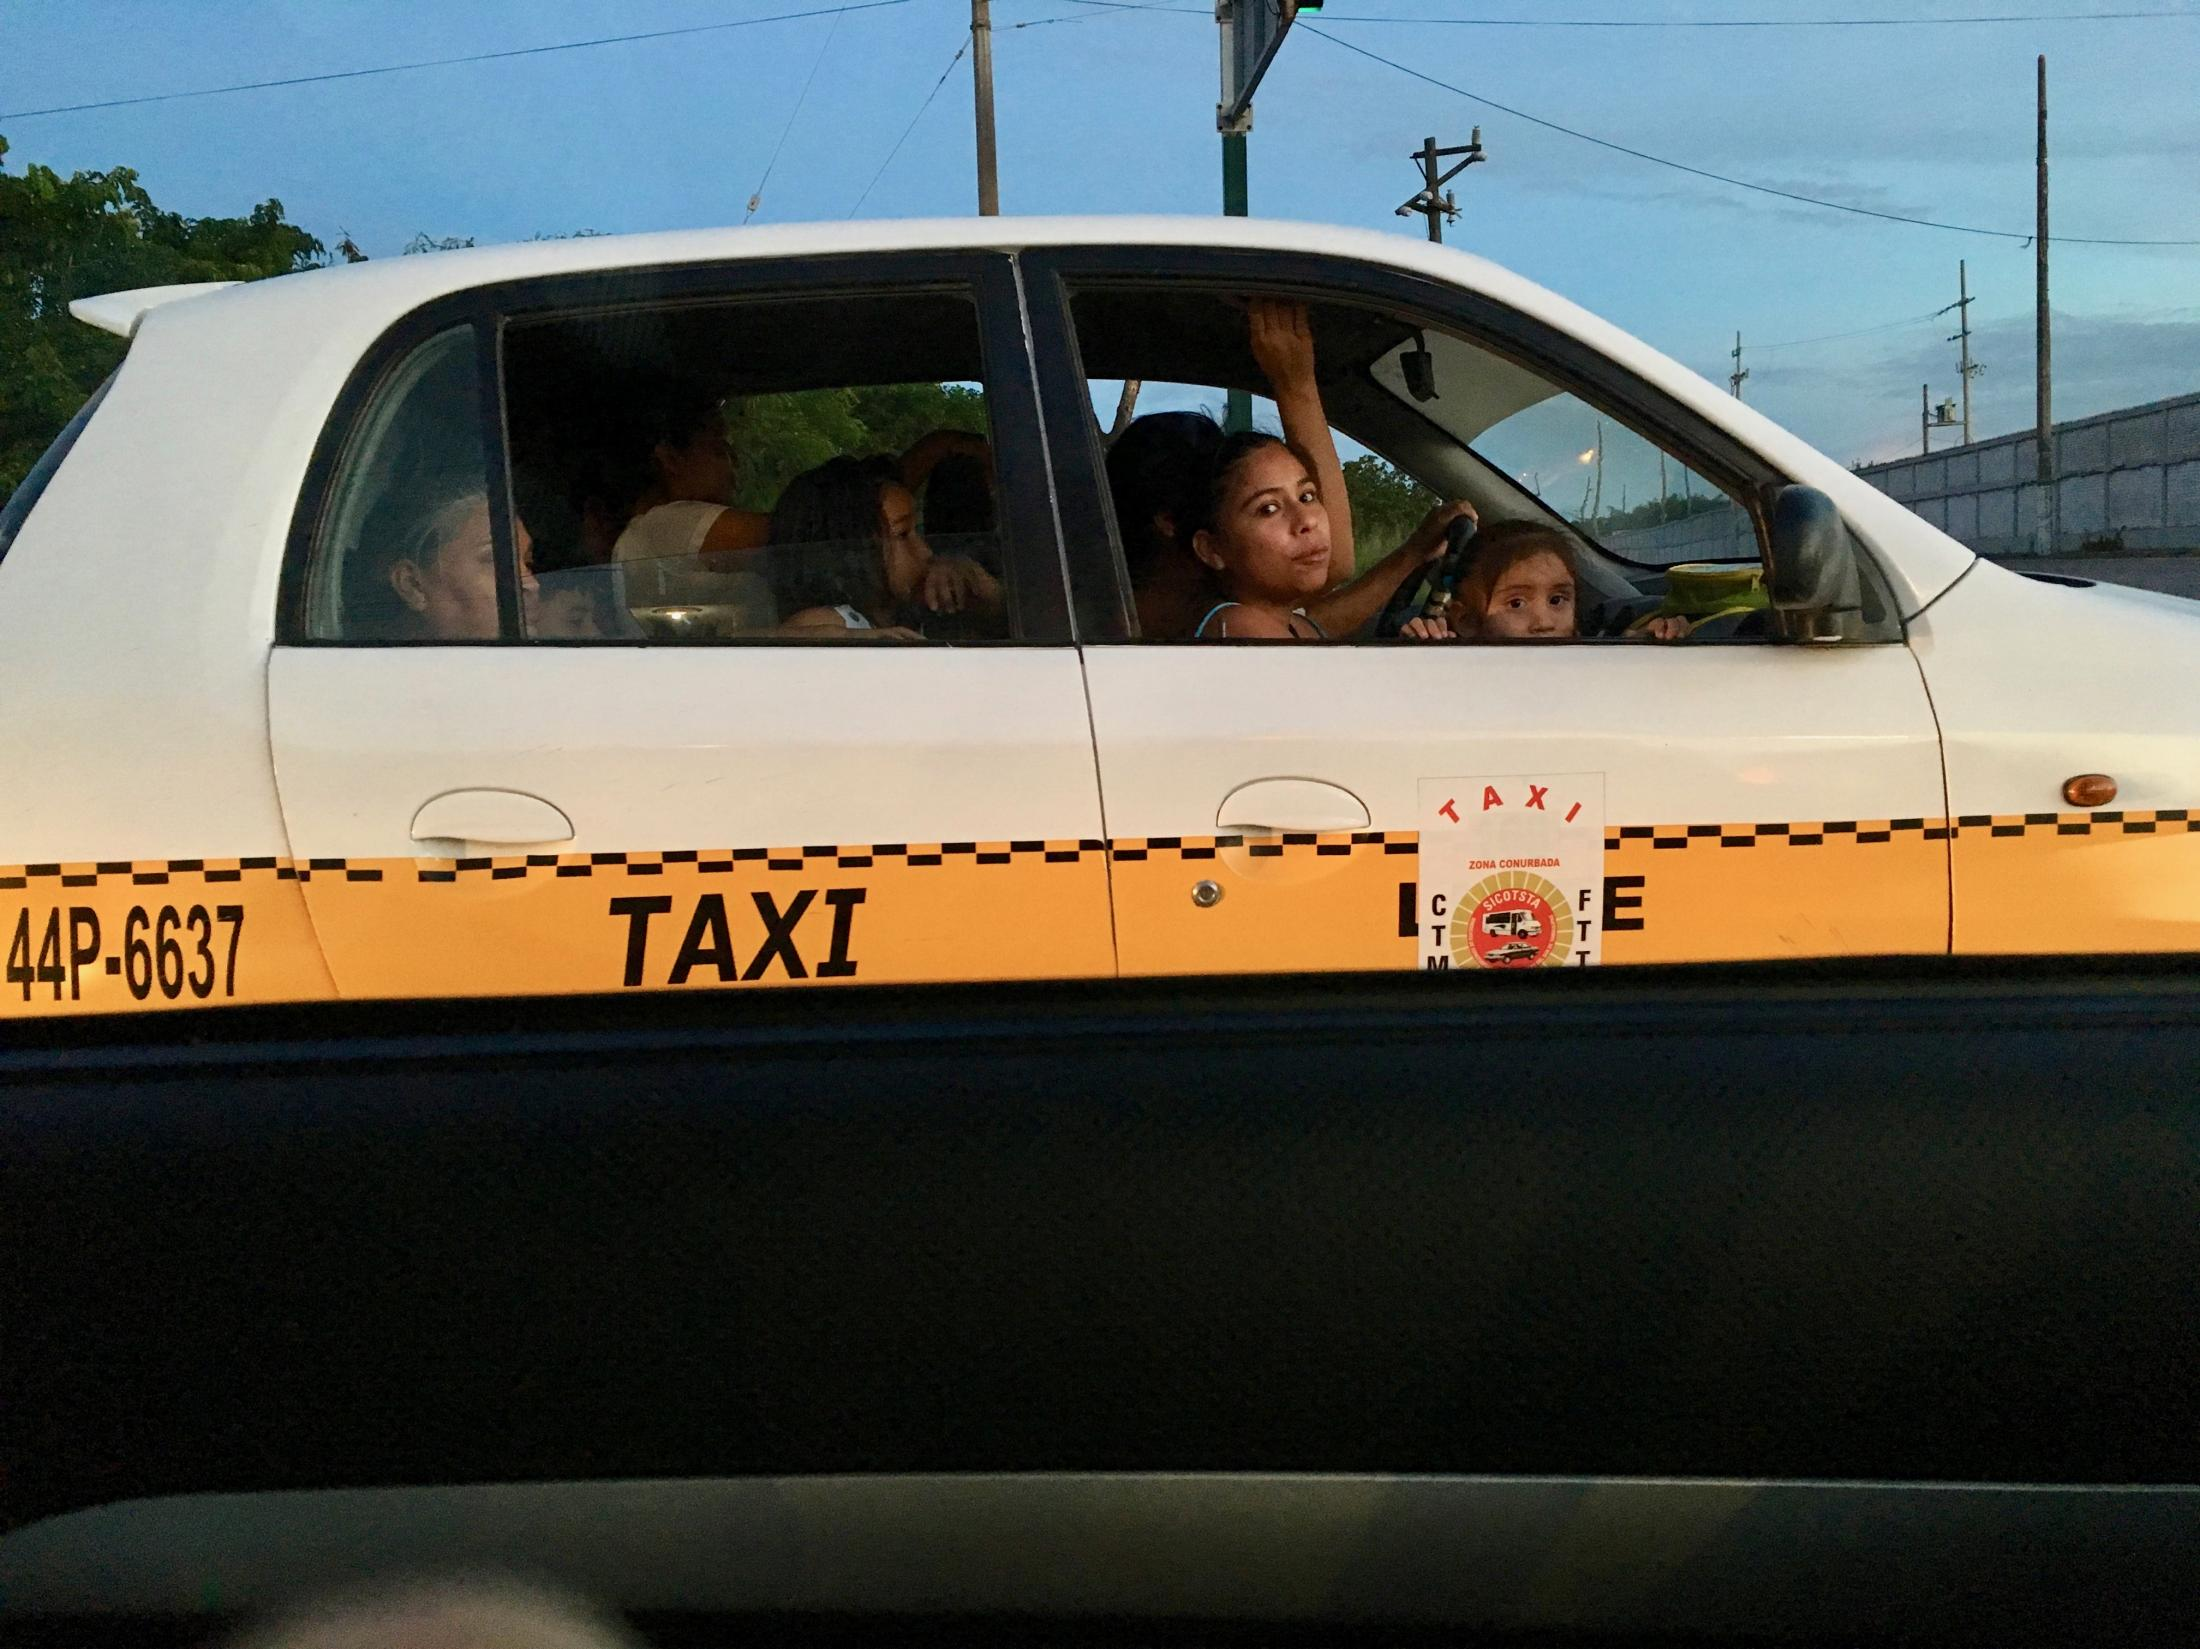 Ciudad Madero, Tamaulipas, México. 2016. Lady and child looking outside their taxi's window. I had gone to the beach with my parents and grandmother.